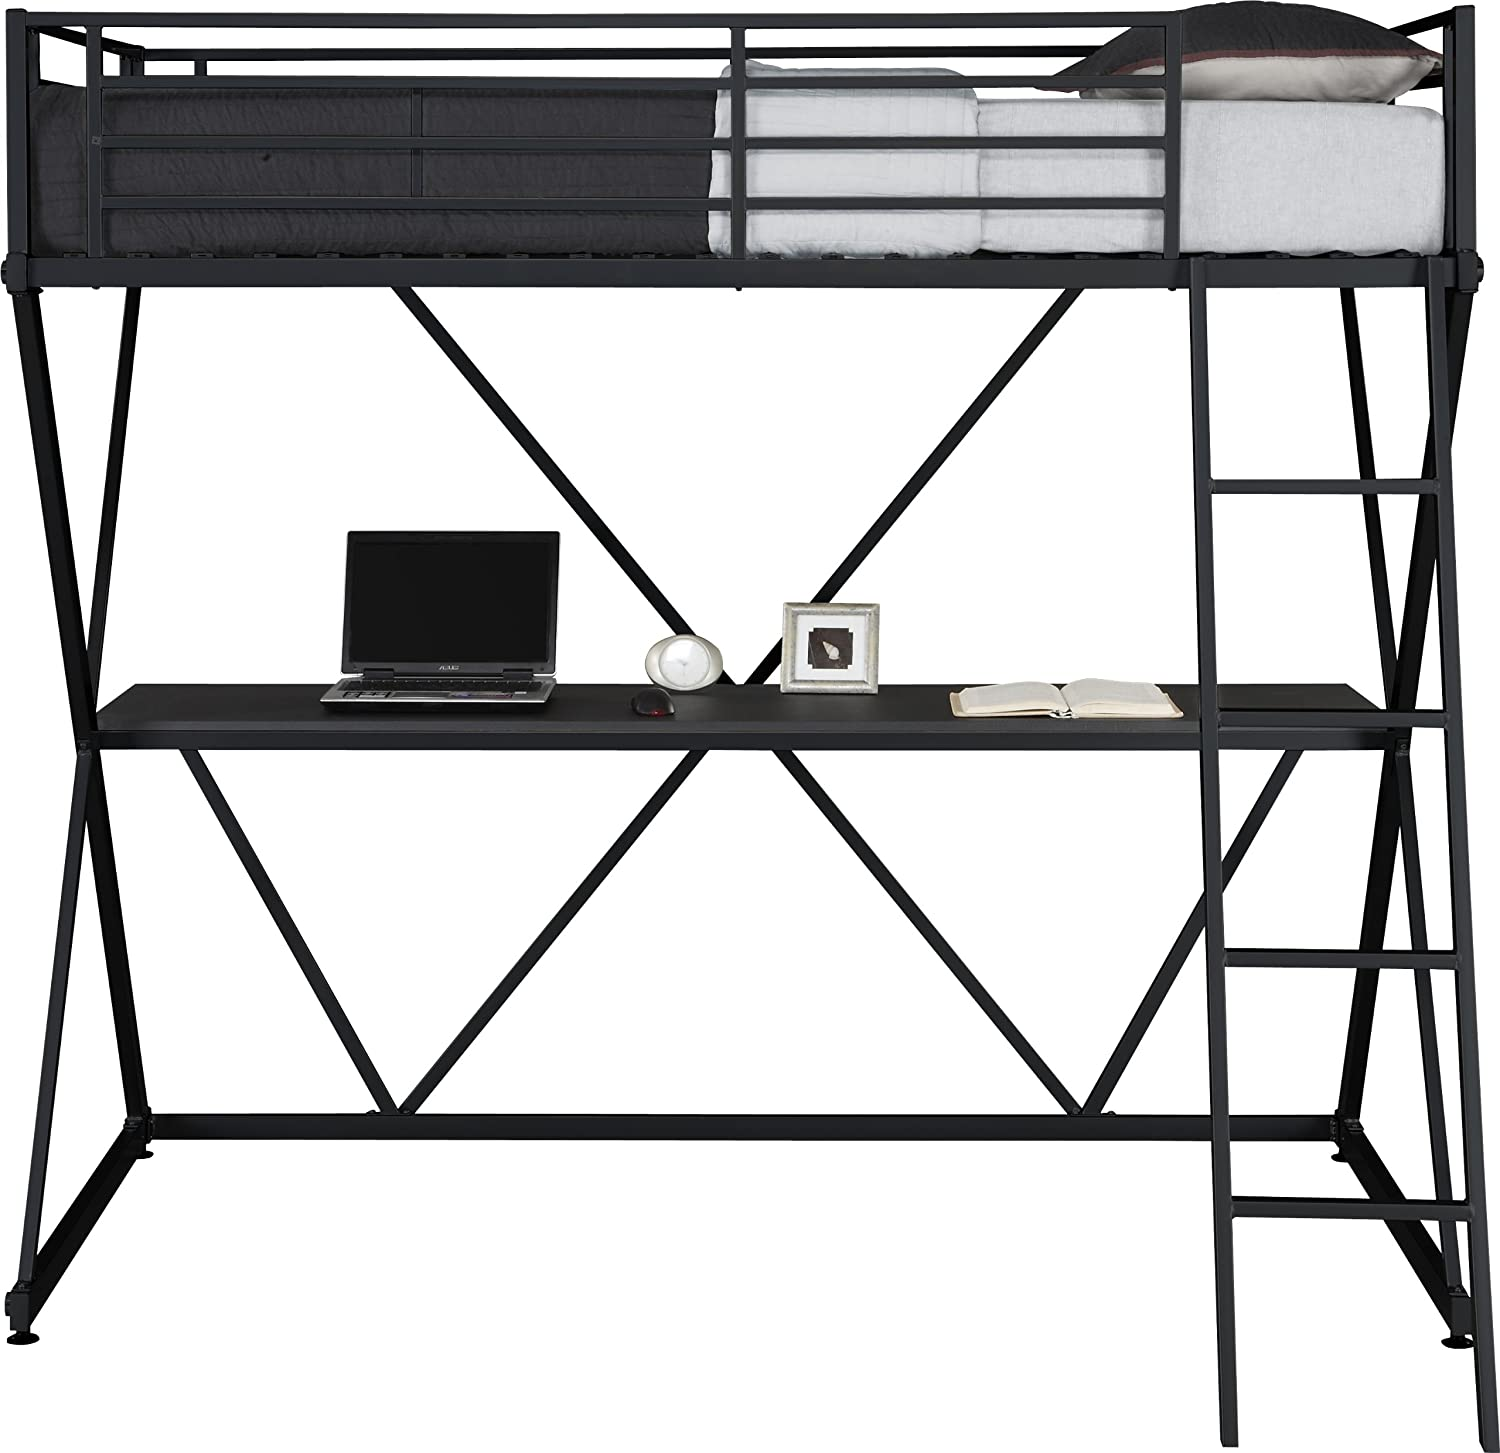 Amazon com  DHP X Loft Metal Bunk Bed Frame with Desk   Space Saving Design    Twin  Black  Kitchen   Dining. Amazon com  DHP X Loft Metal Bunk Bed Frame with Desk   Space